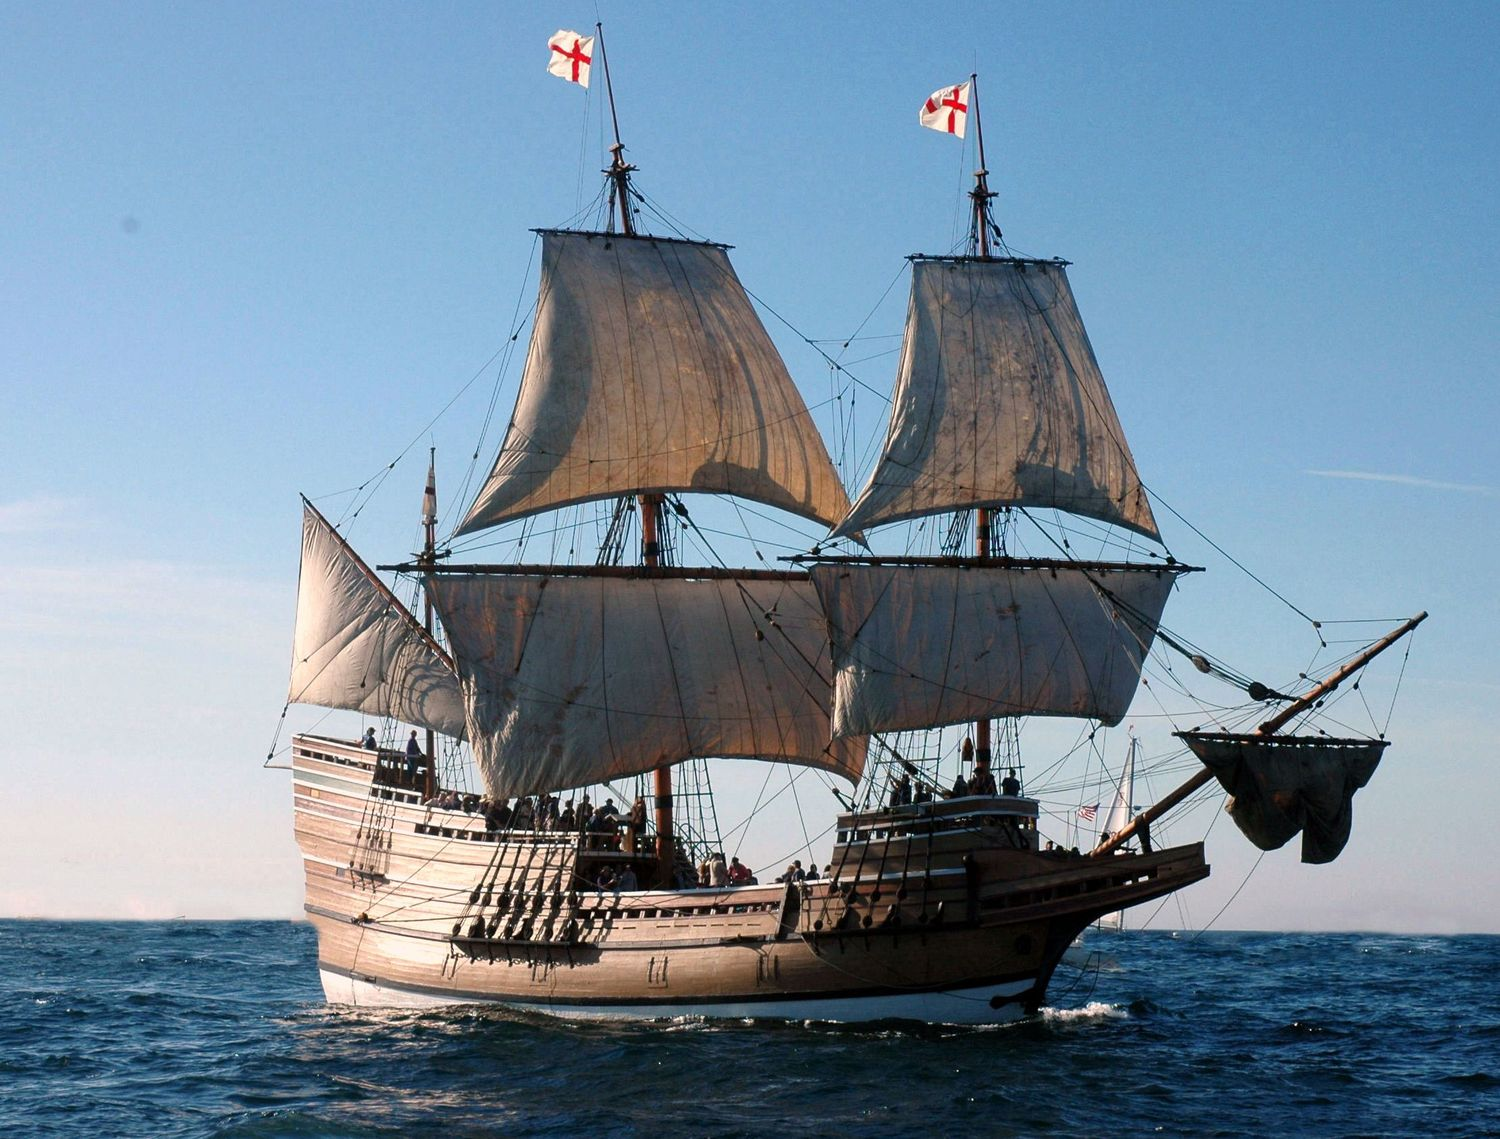 Plimoth Plantation's Fully Restored MAYFLOWER II to Begin Homecoming Voyage to Plymouth, Massachusetts from Mystic, Connecticut on July 20, 2020